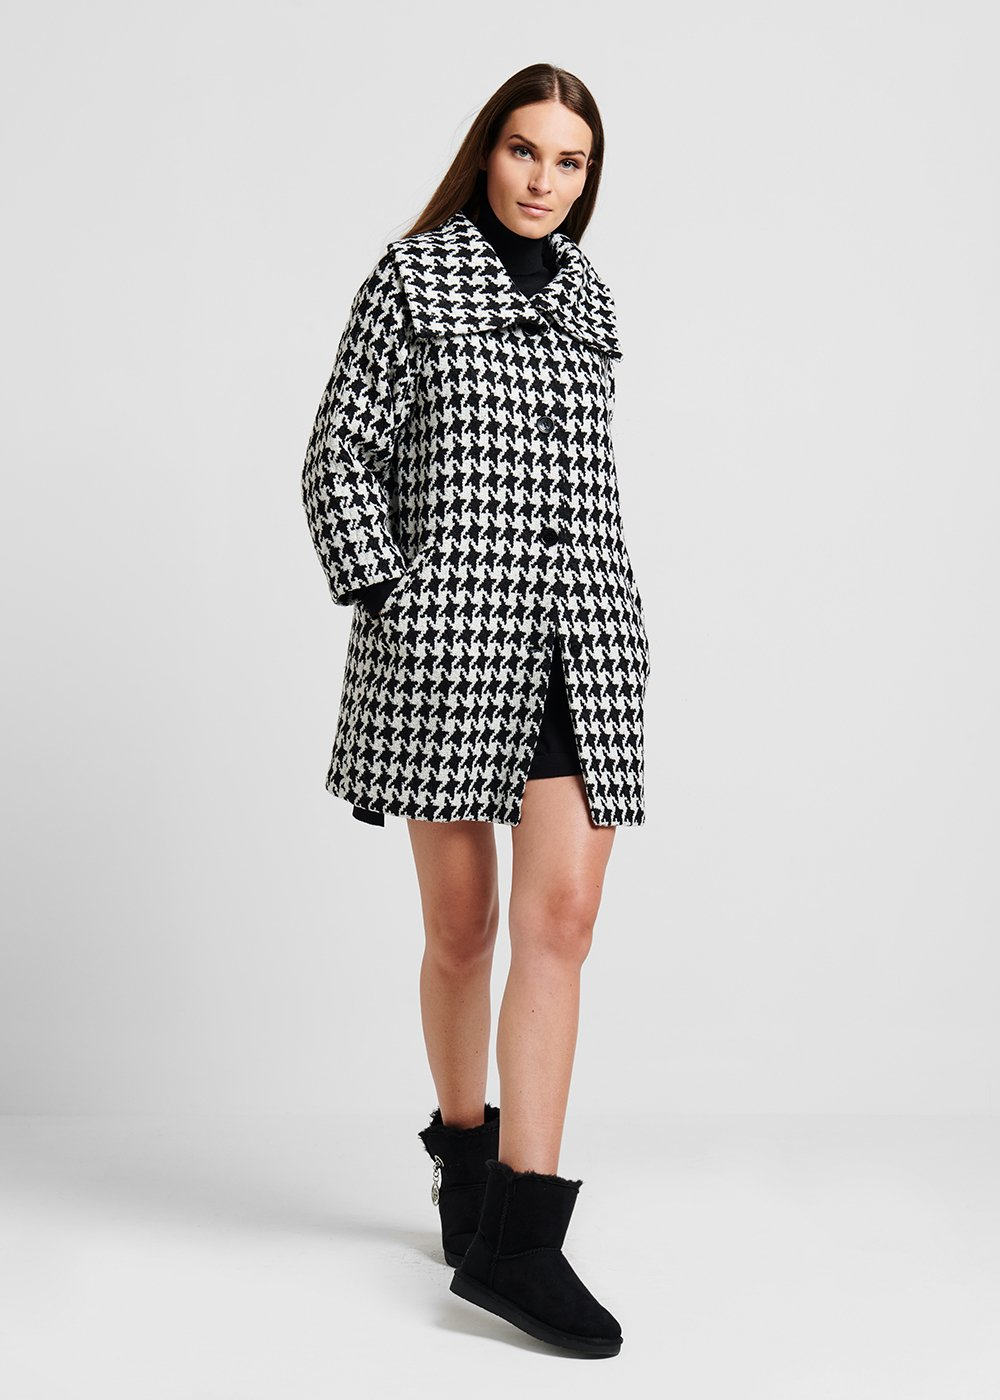 Jacquard coat with houndstooth pattern